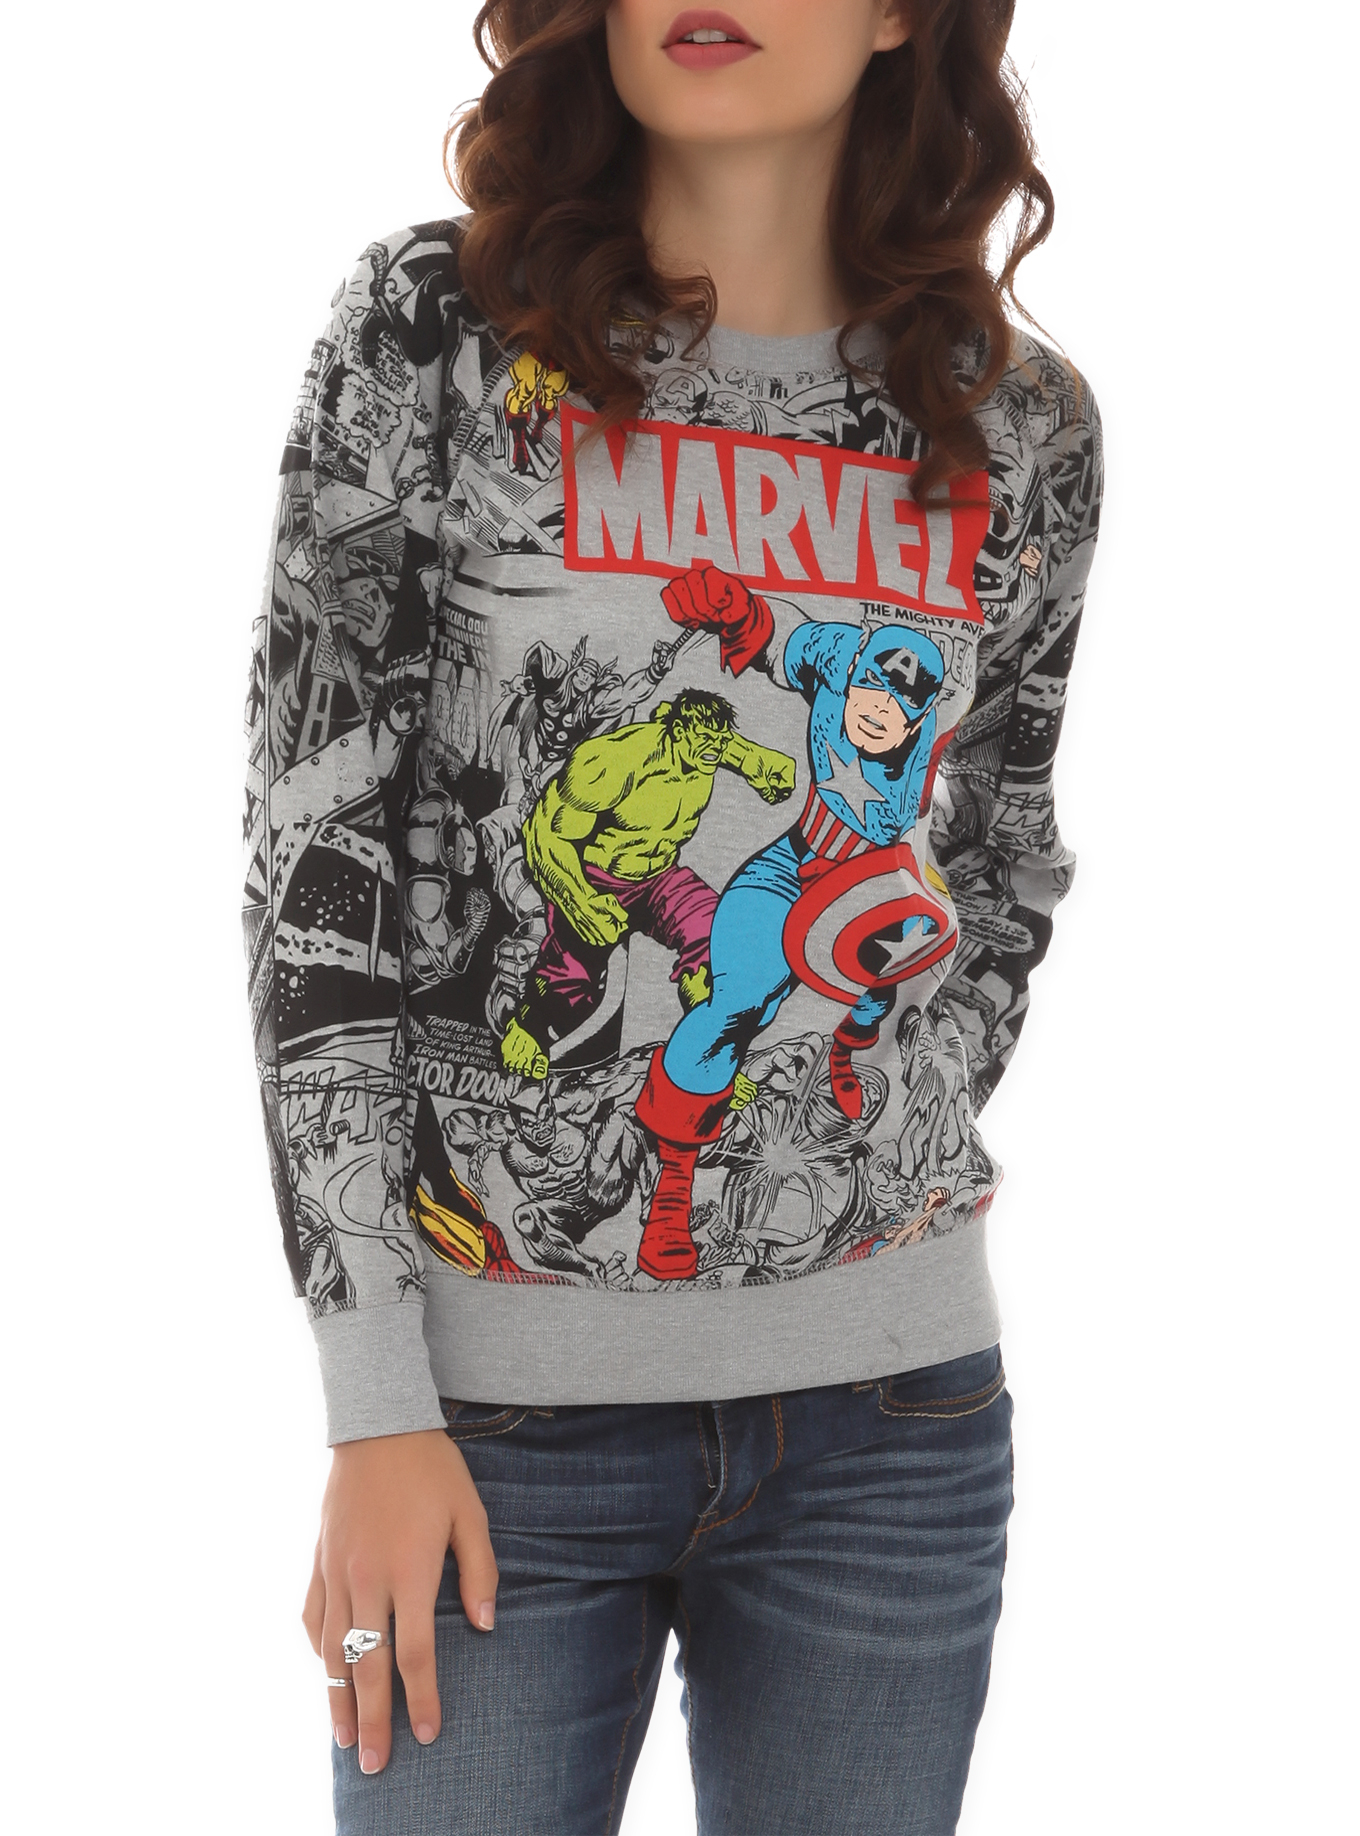 Find marvel at Vans. Shop for marvel, popular shoe styles, clothing, accessories, and much more!